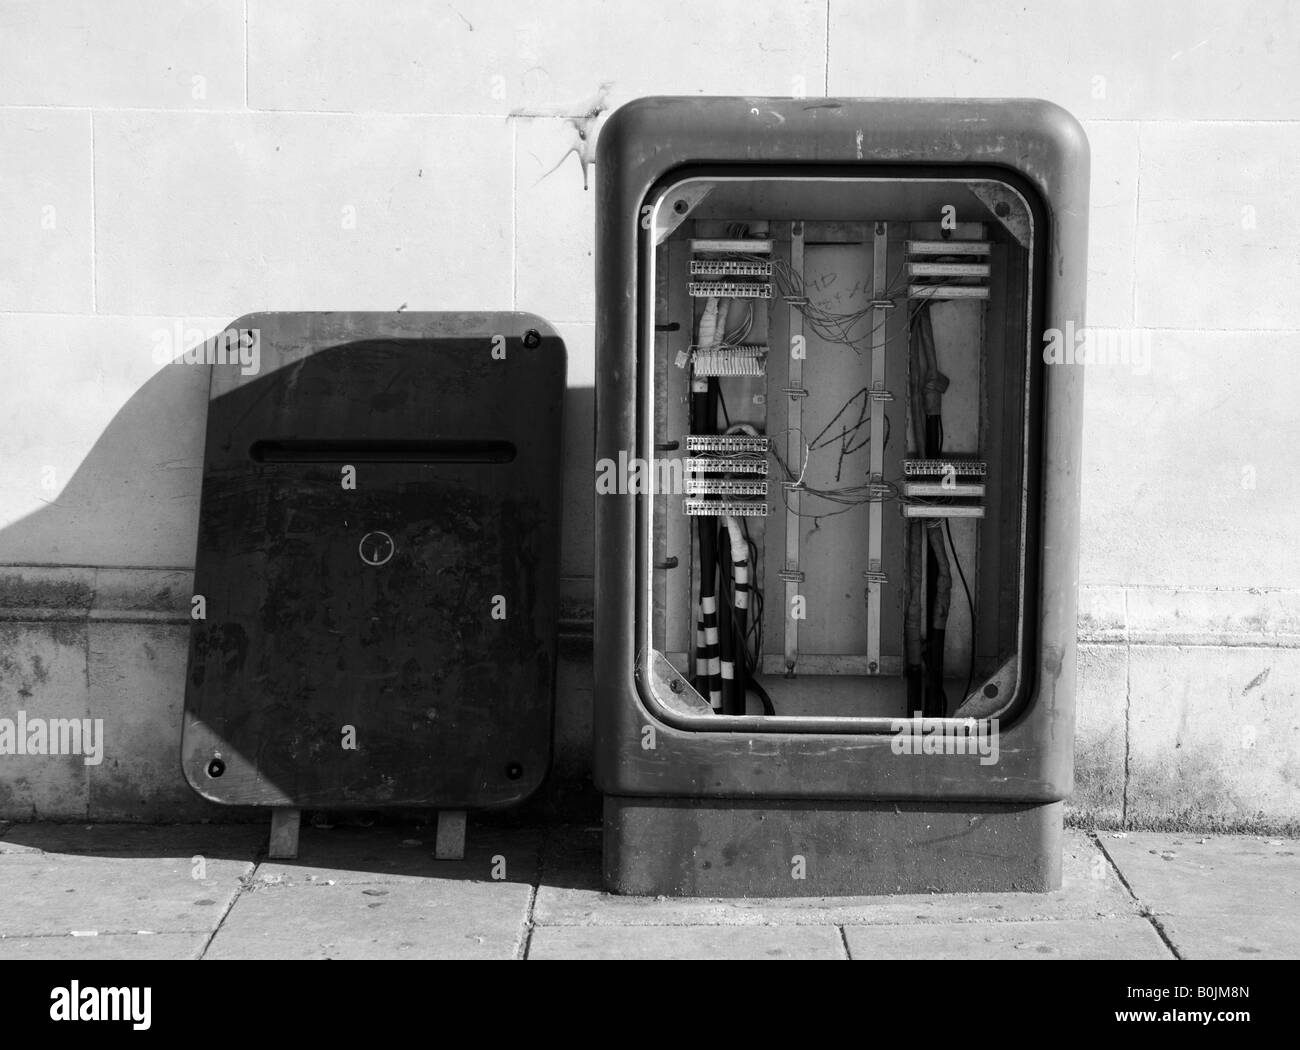 A disused telephone exchange box left with its front panel off on a street in Clacton. - Stock Image